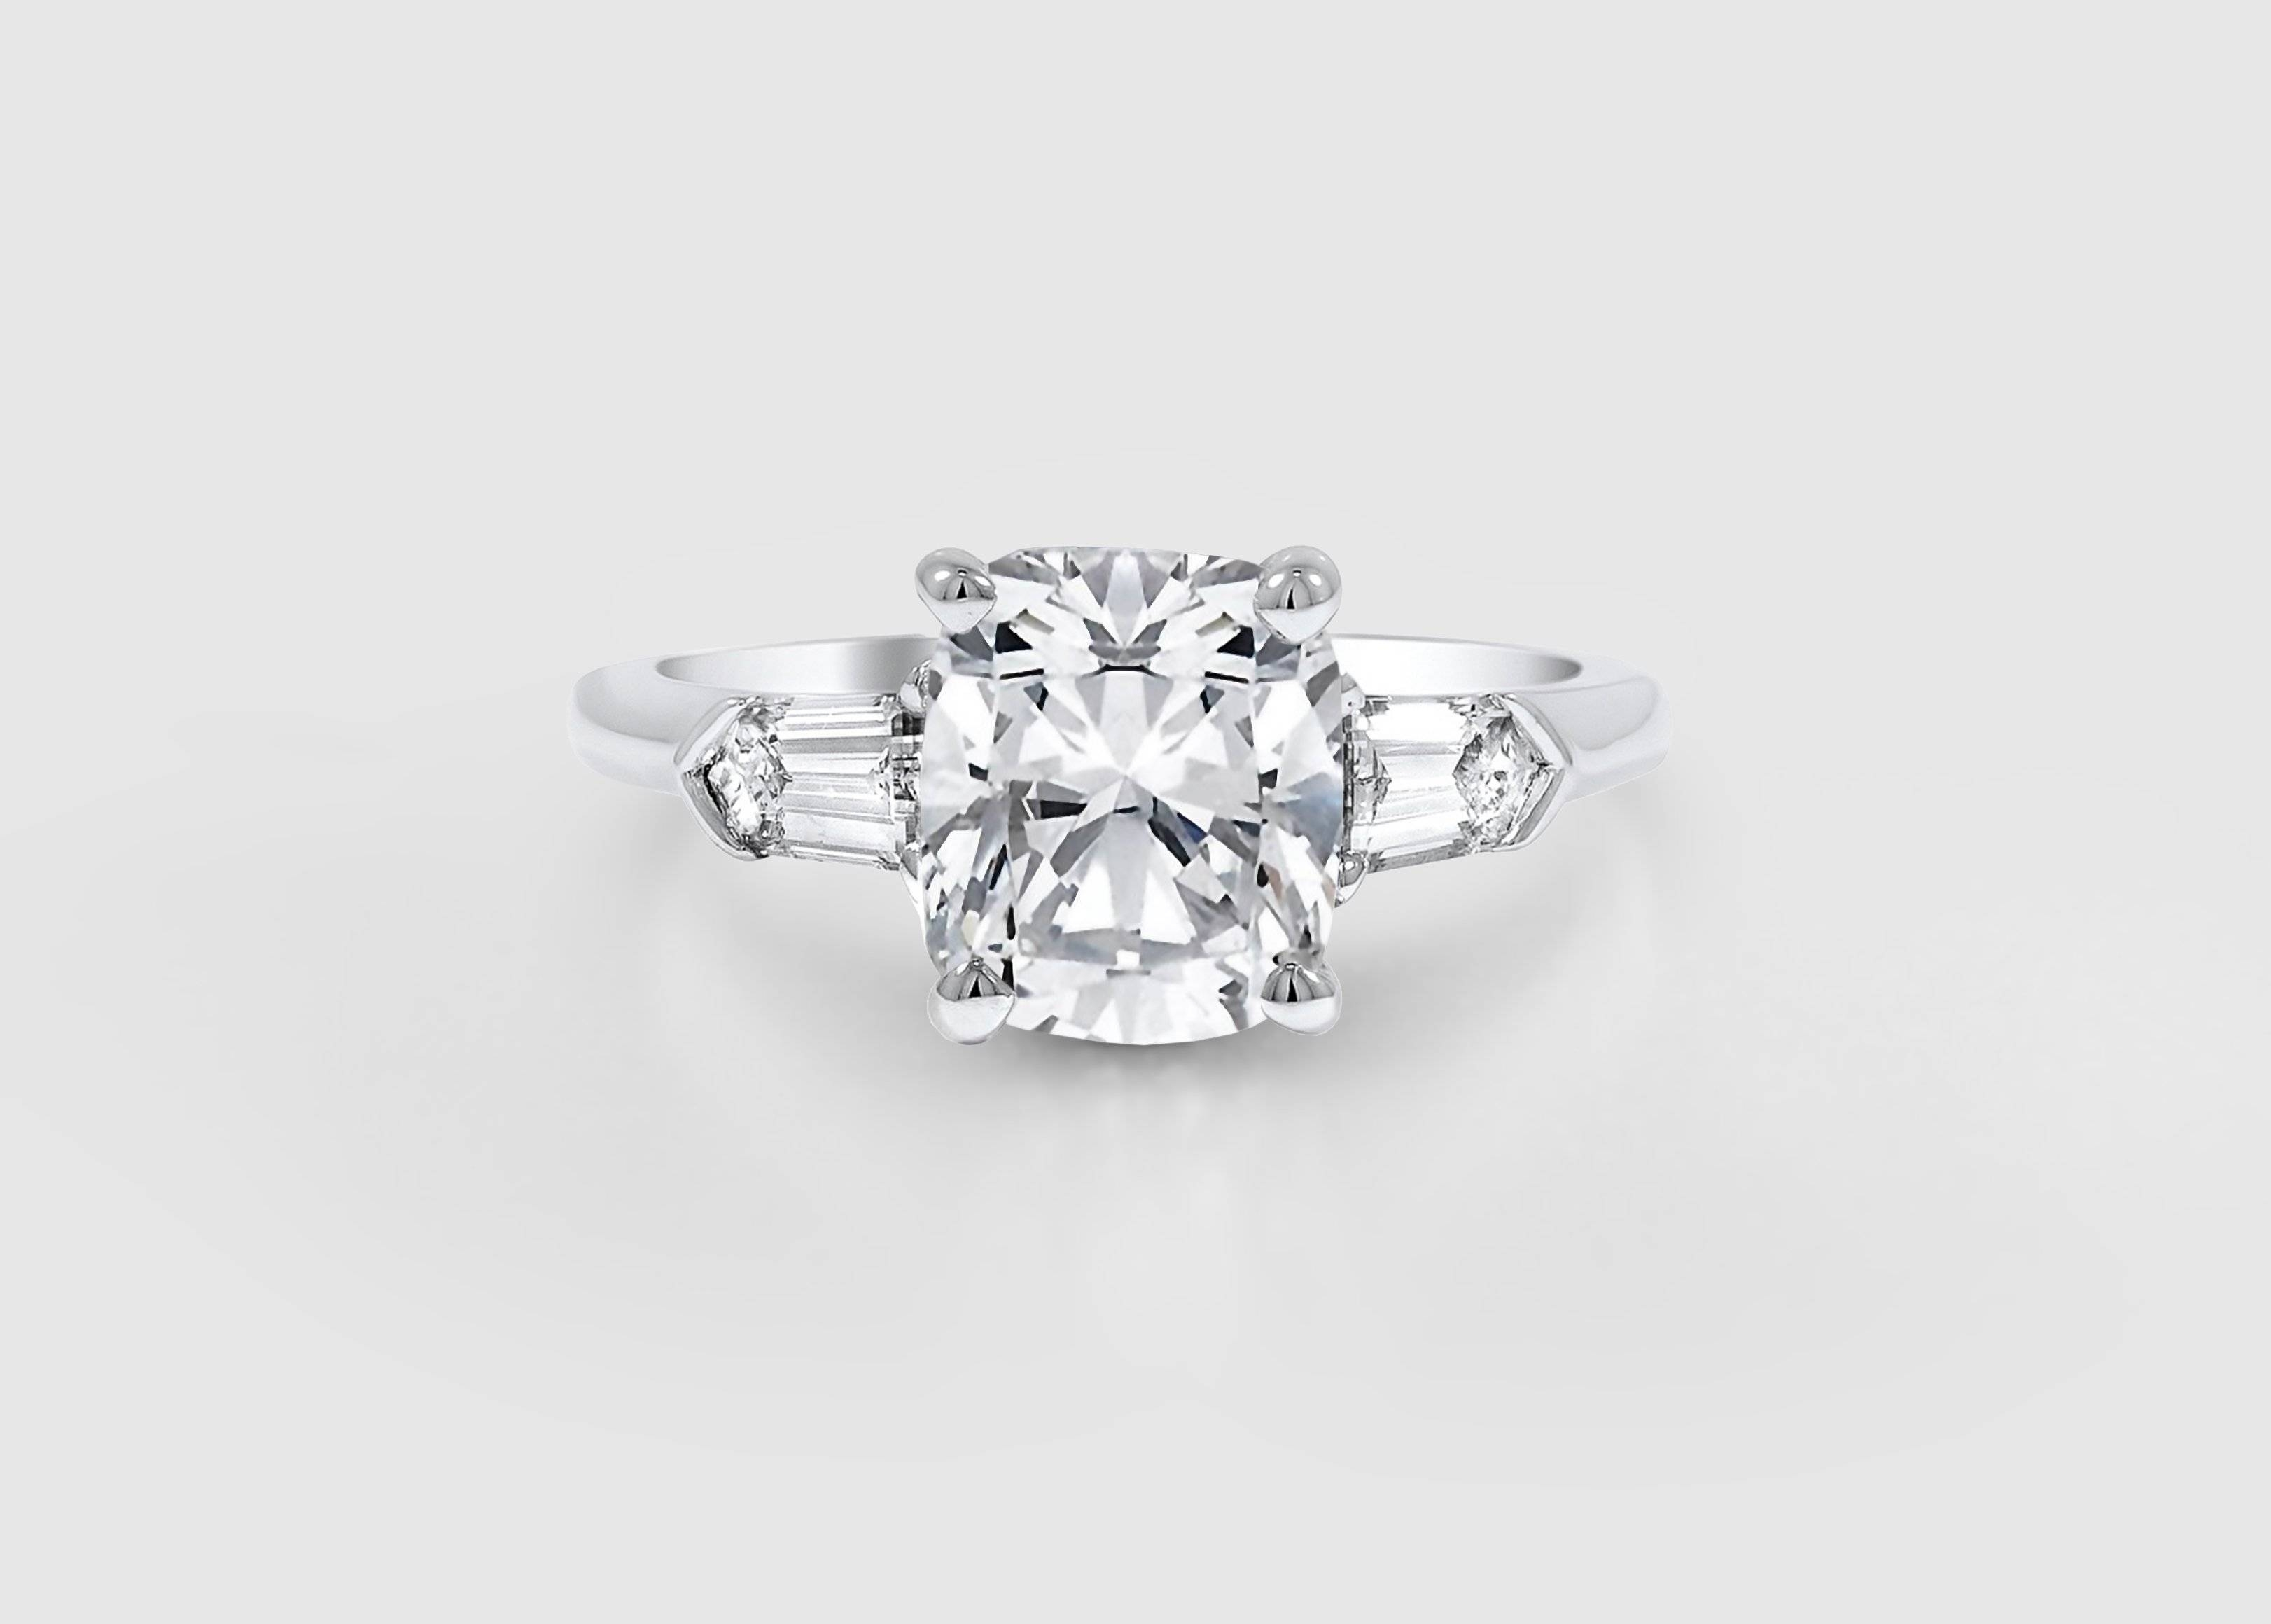 Engagement Ring Trends Of The Past, Present, And Future With Engagement Rings Without Stones (View 5 of 15)